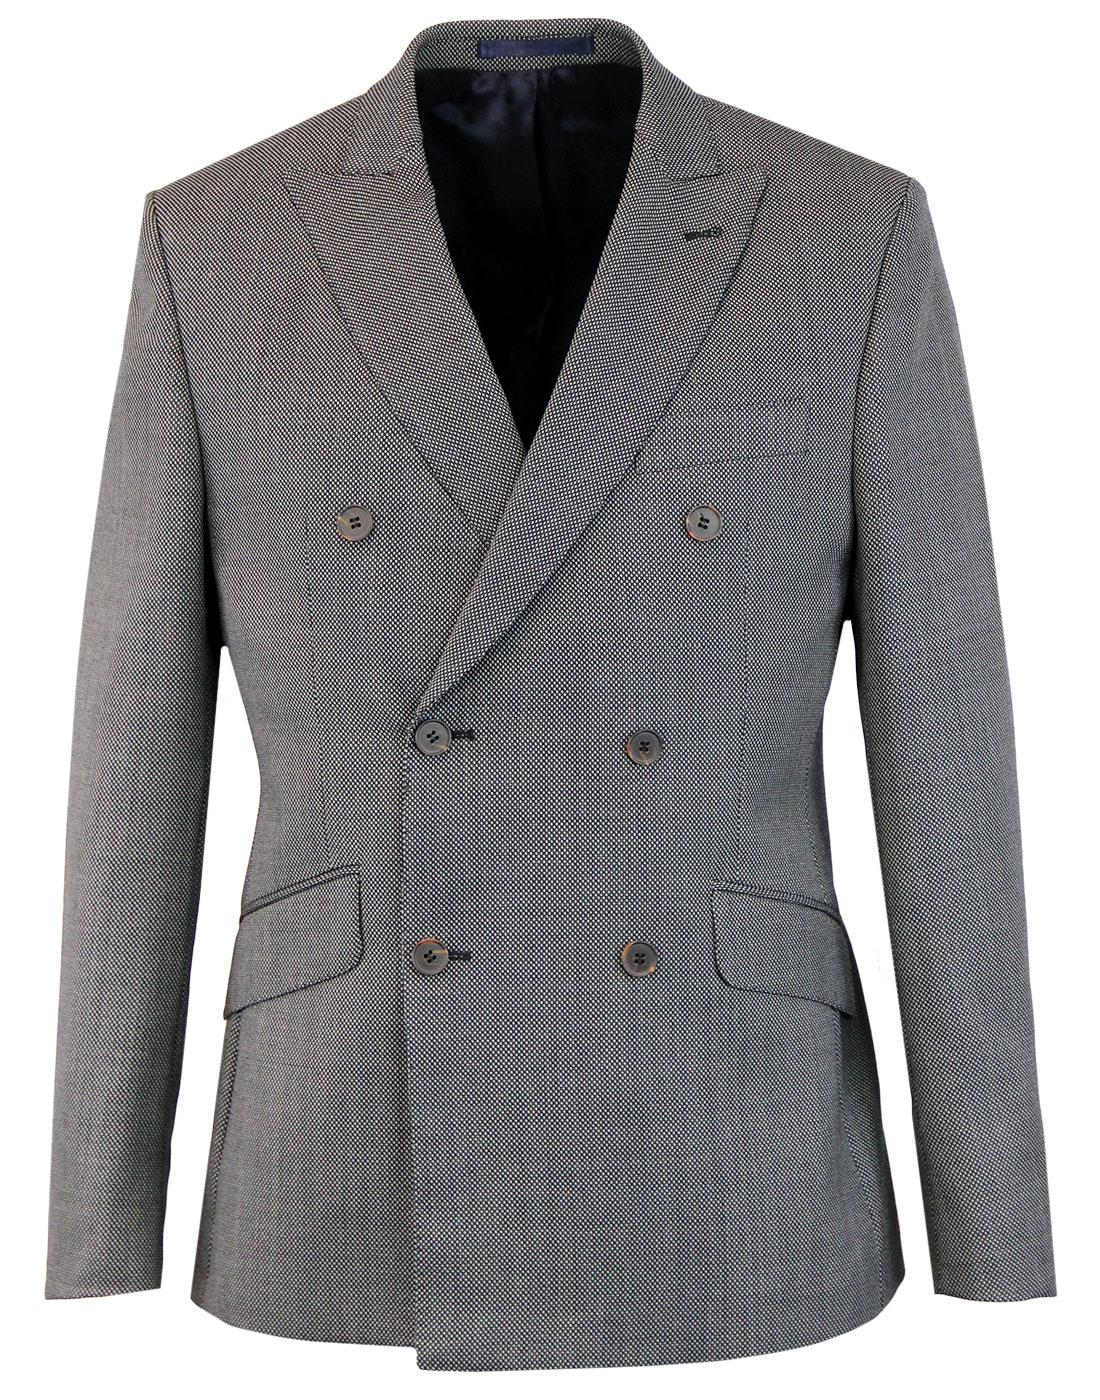 60s Mod Birdseye Check Double Breasted Suit Jacket